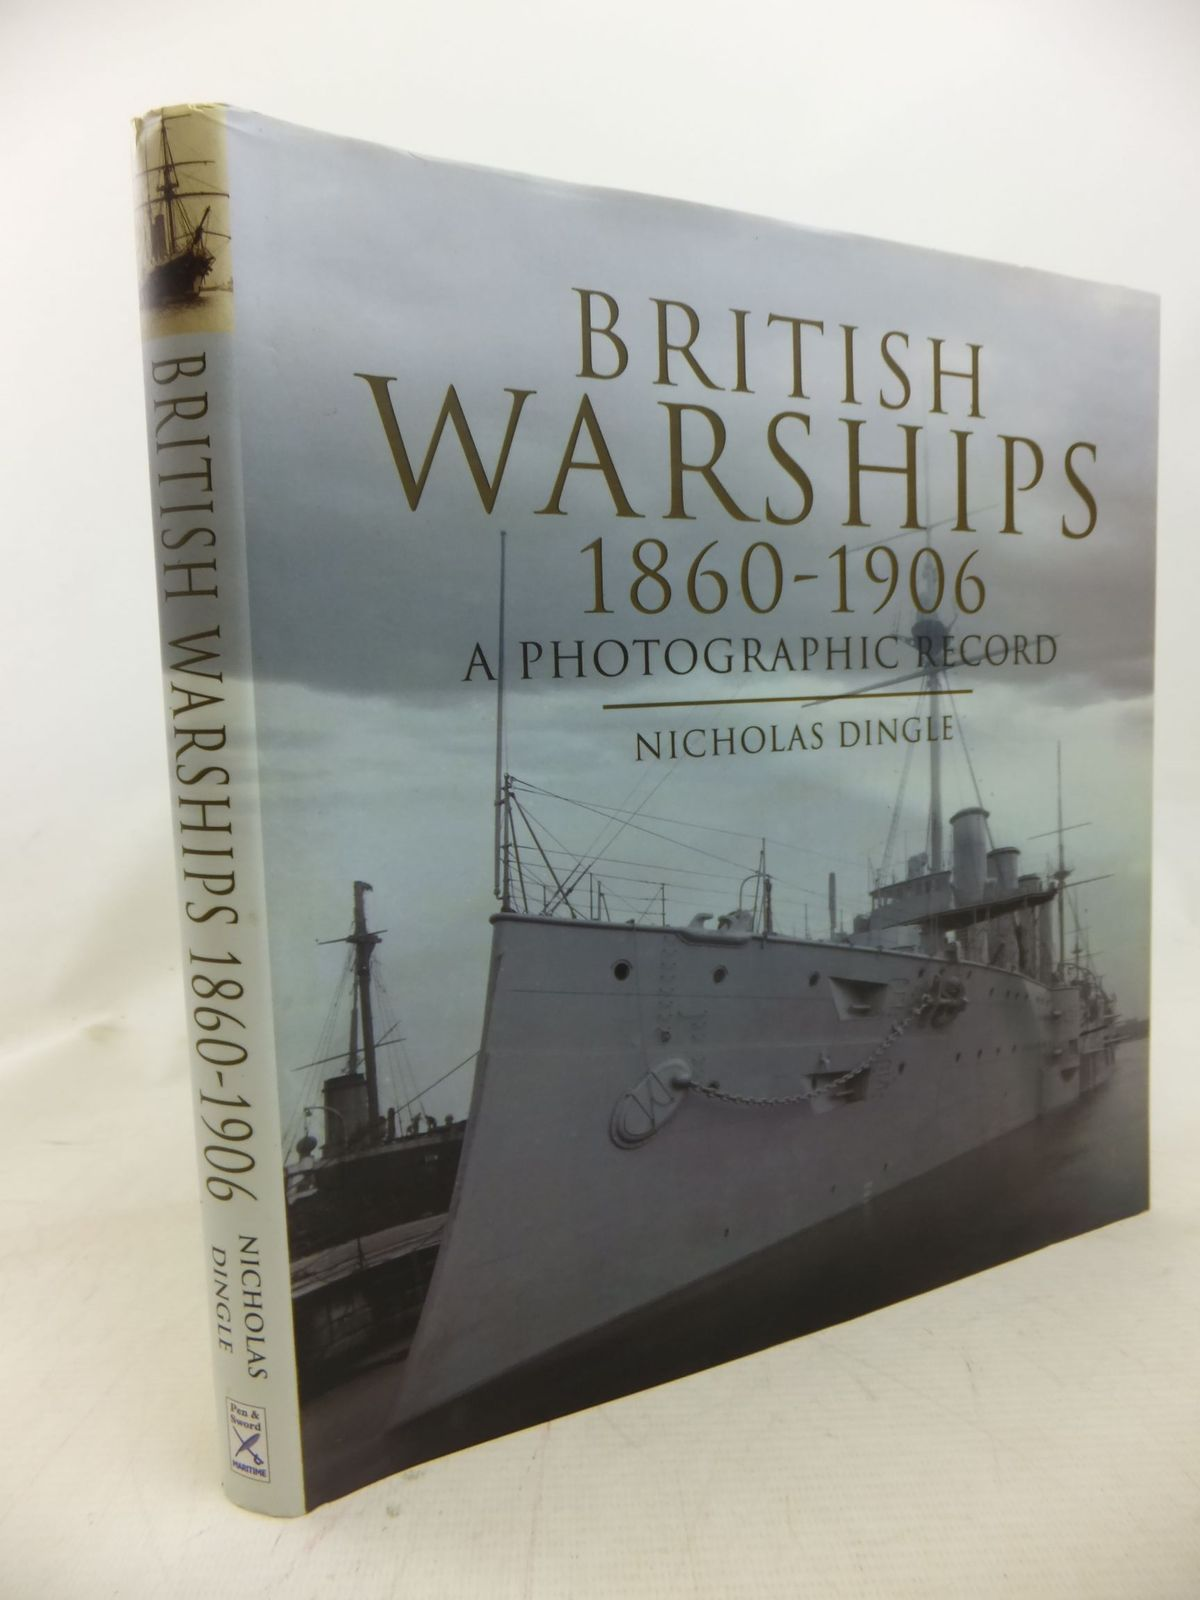 Photo of BRITISH WARSHIPS 1860-1906 A PHOTOGRAPHIC HISTORY written by Dingle, Nicholas J. published by Pen & Sword (STOCK CODE: 2115345)  for sale by Stella & Rose's Books